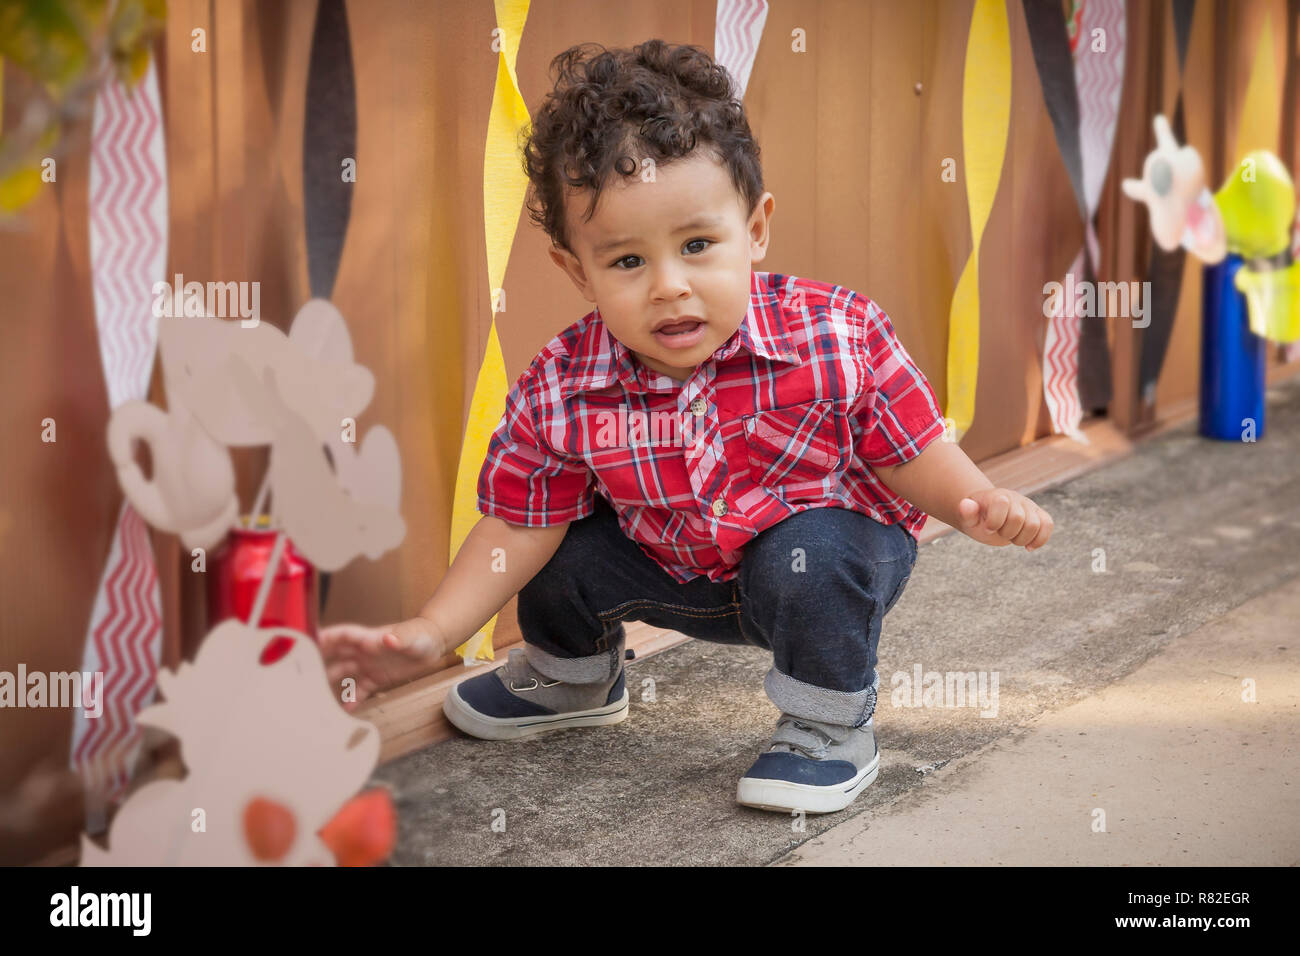 cac458719 Curly hair one-year-old wearing a red plaid shirt, blue jeans, and sneakers  look at the camera as he squats at his birthday party.